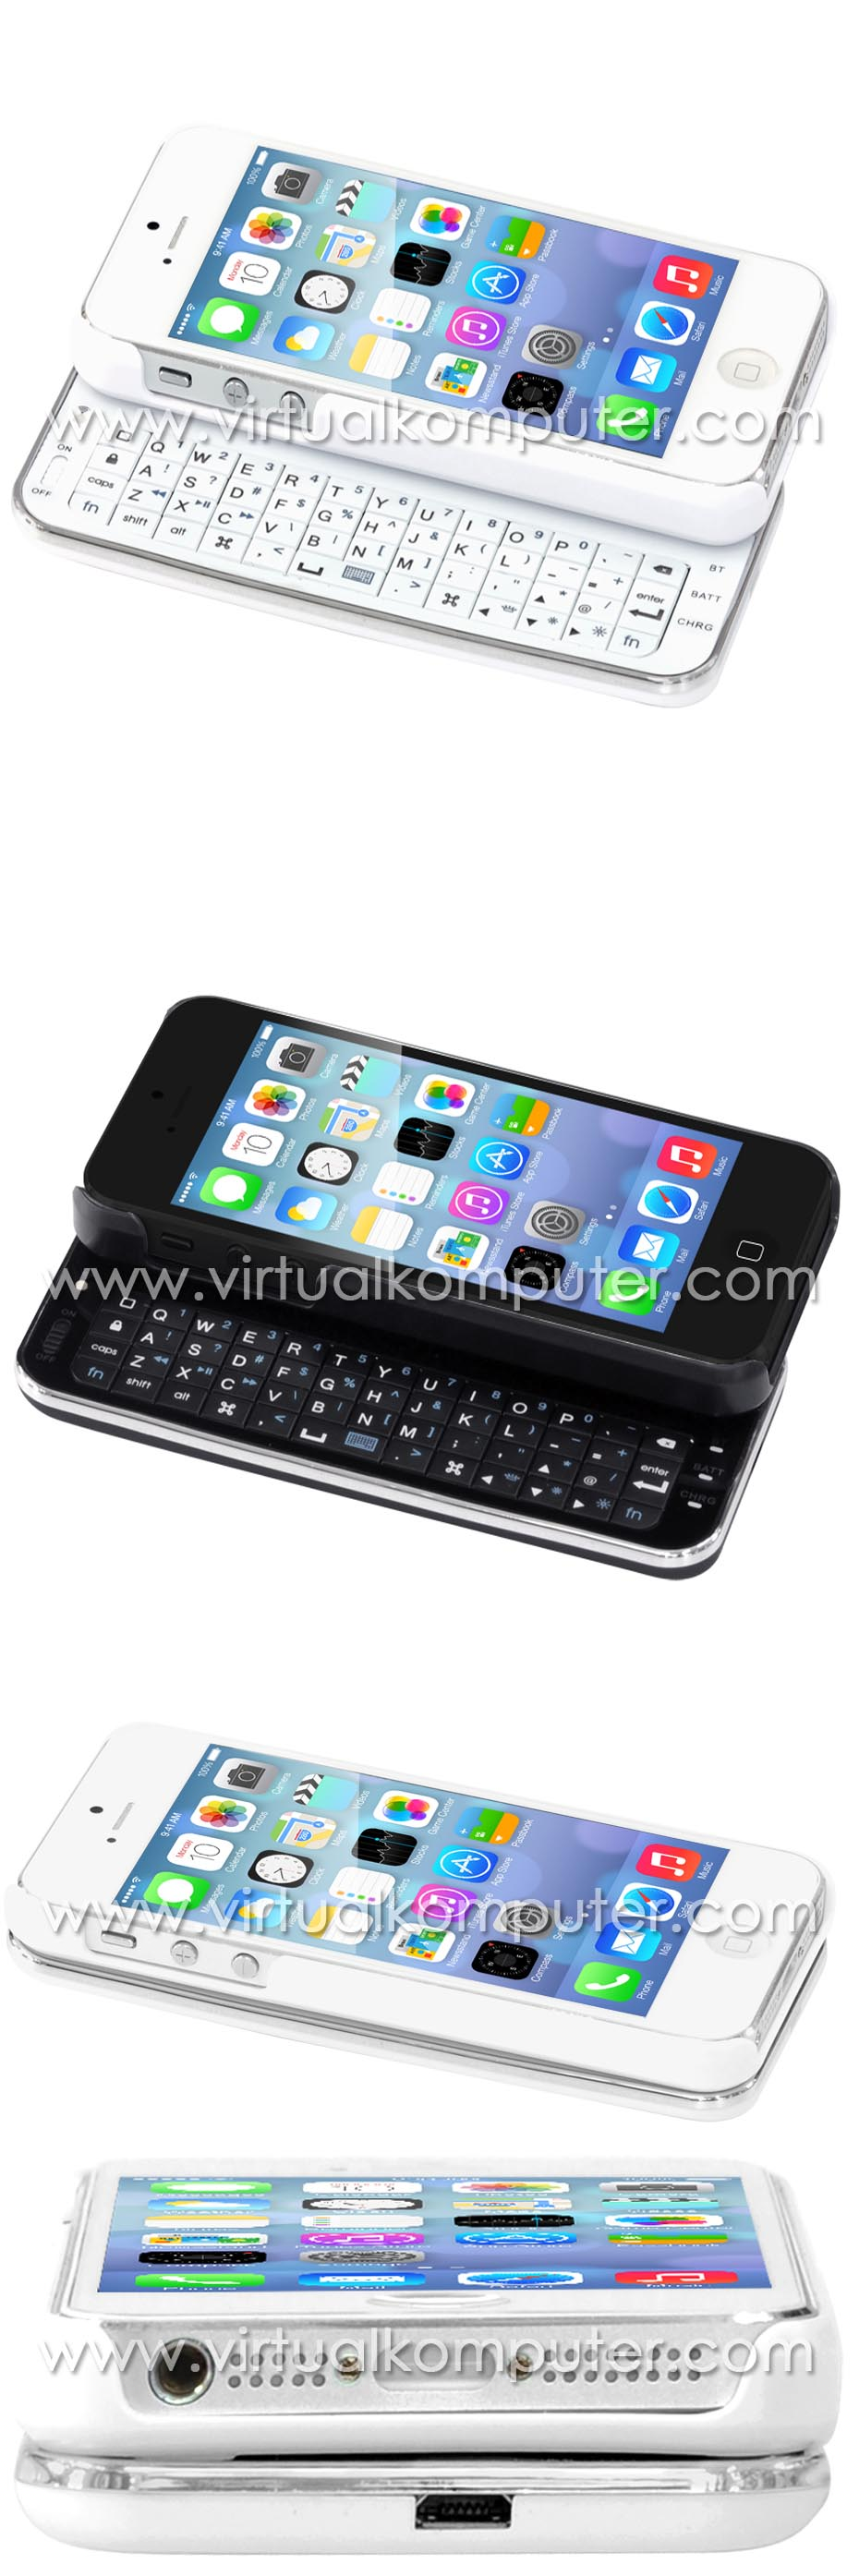 Keyboard Case for iPhone 5, 5S Overview